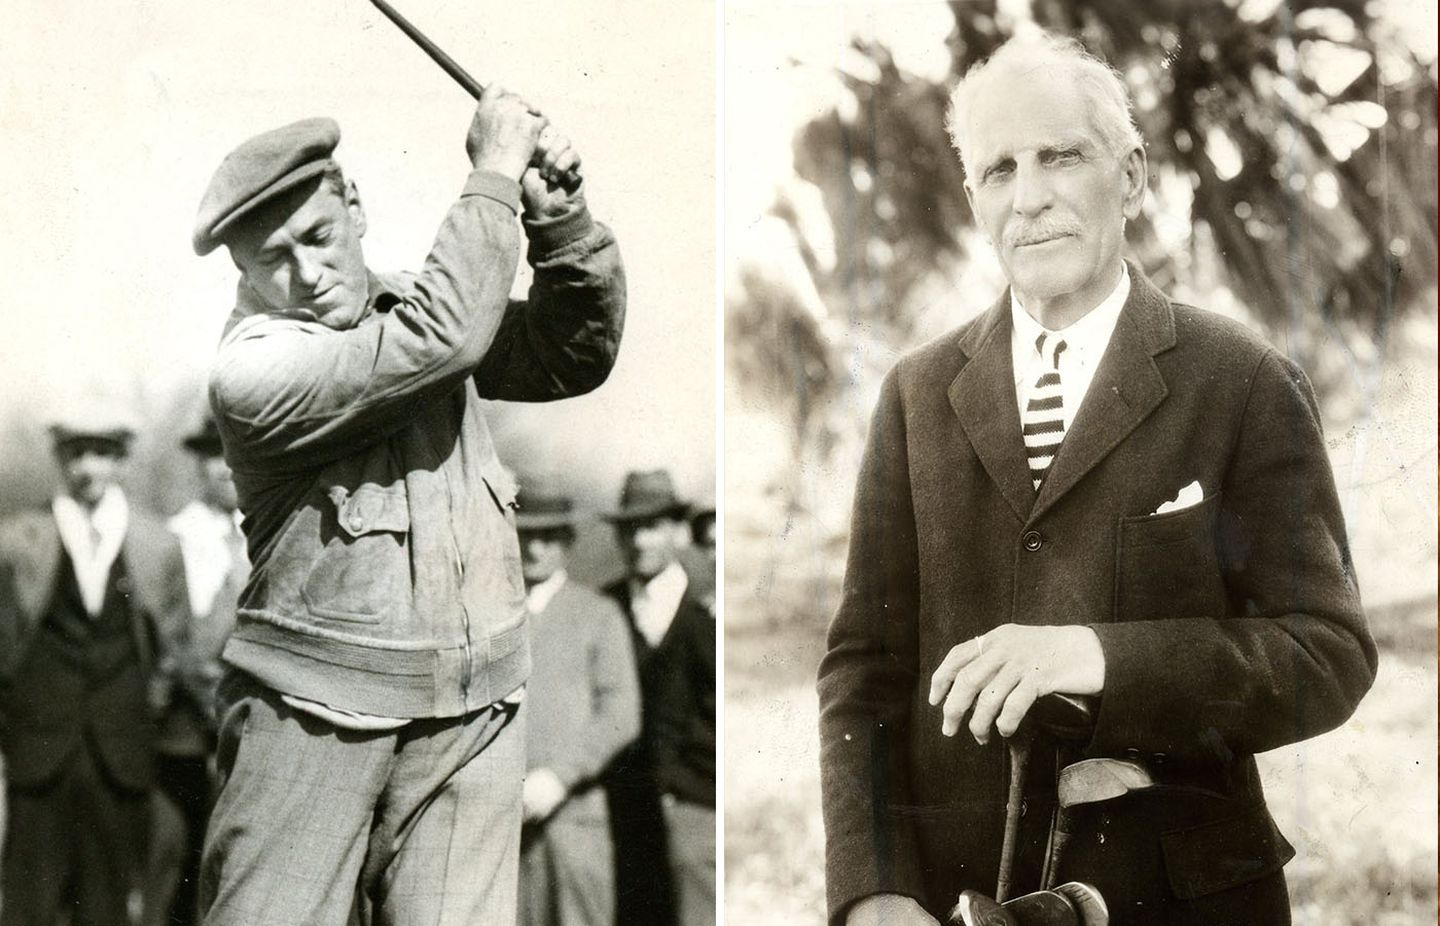 Mayor James M. Curley (left) opened the season at Franklin Park Golf course on April 17, 1931, and George Wright (right), a big league baseball player and golf course designer, on Dec. 26 1934.